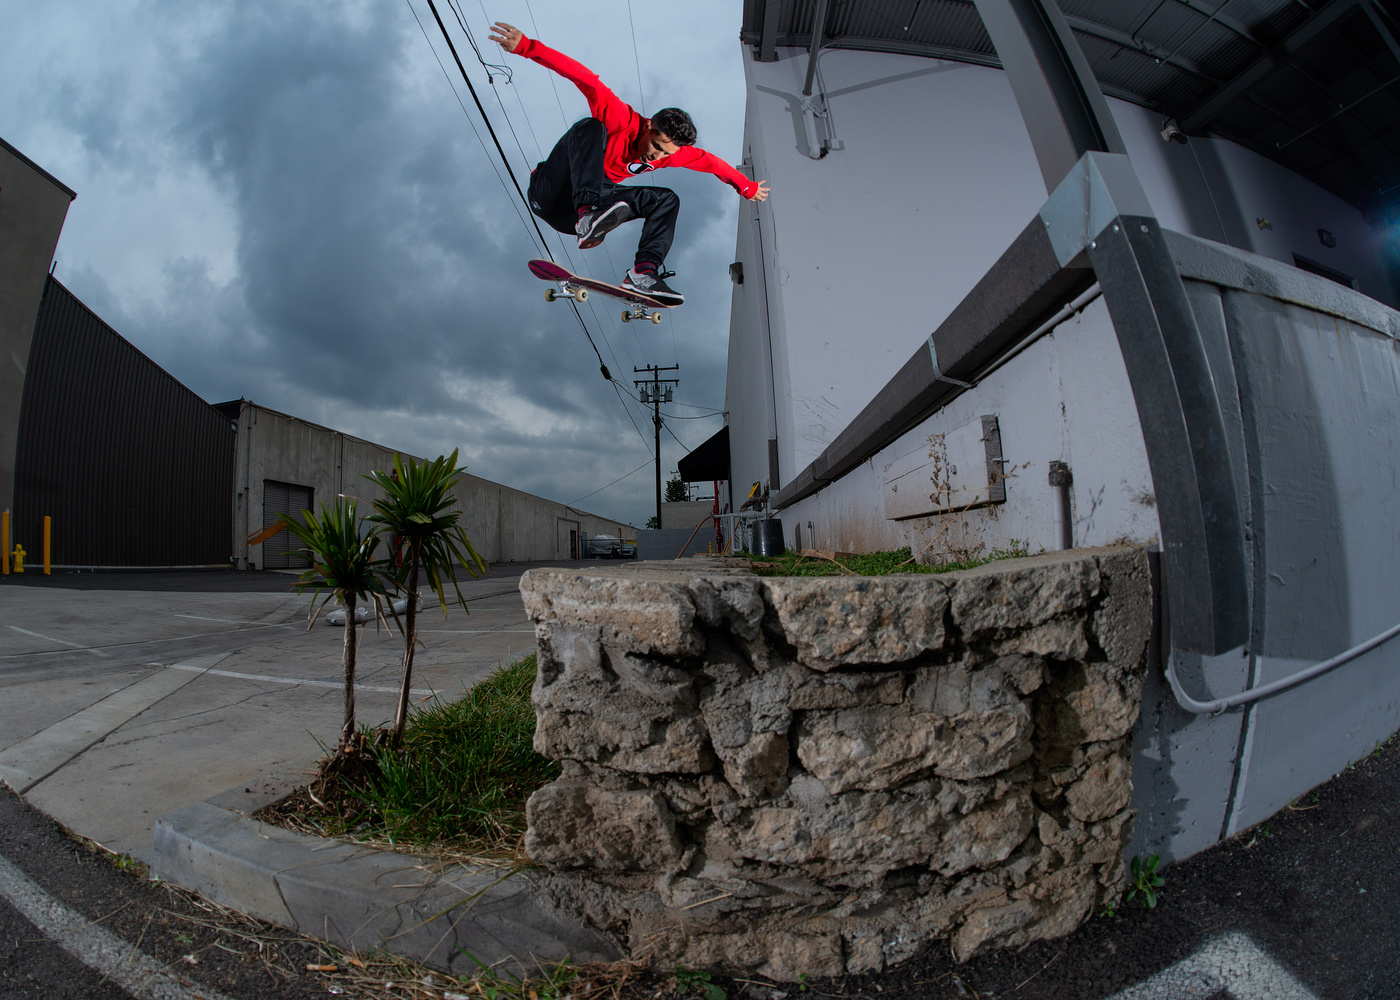 Sam Perales / / Switch bak heel by Will Fisher